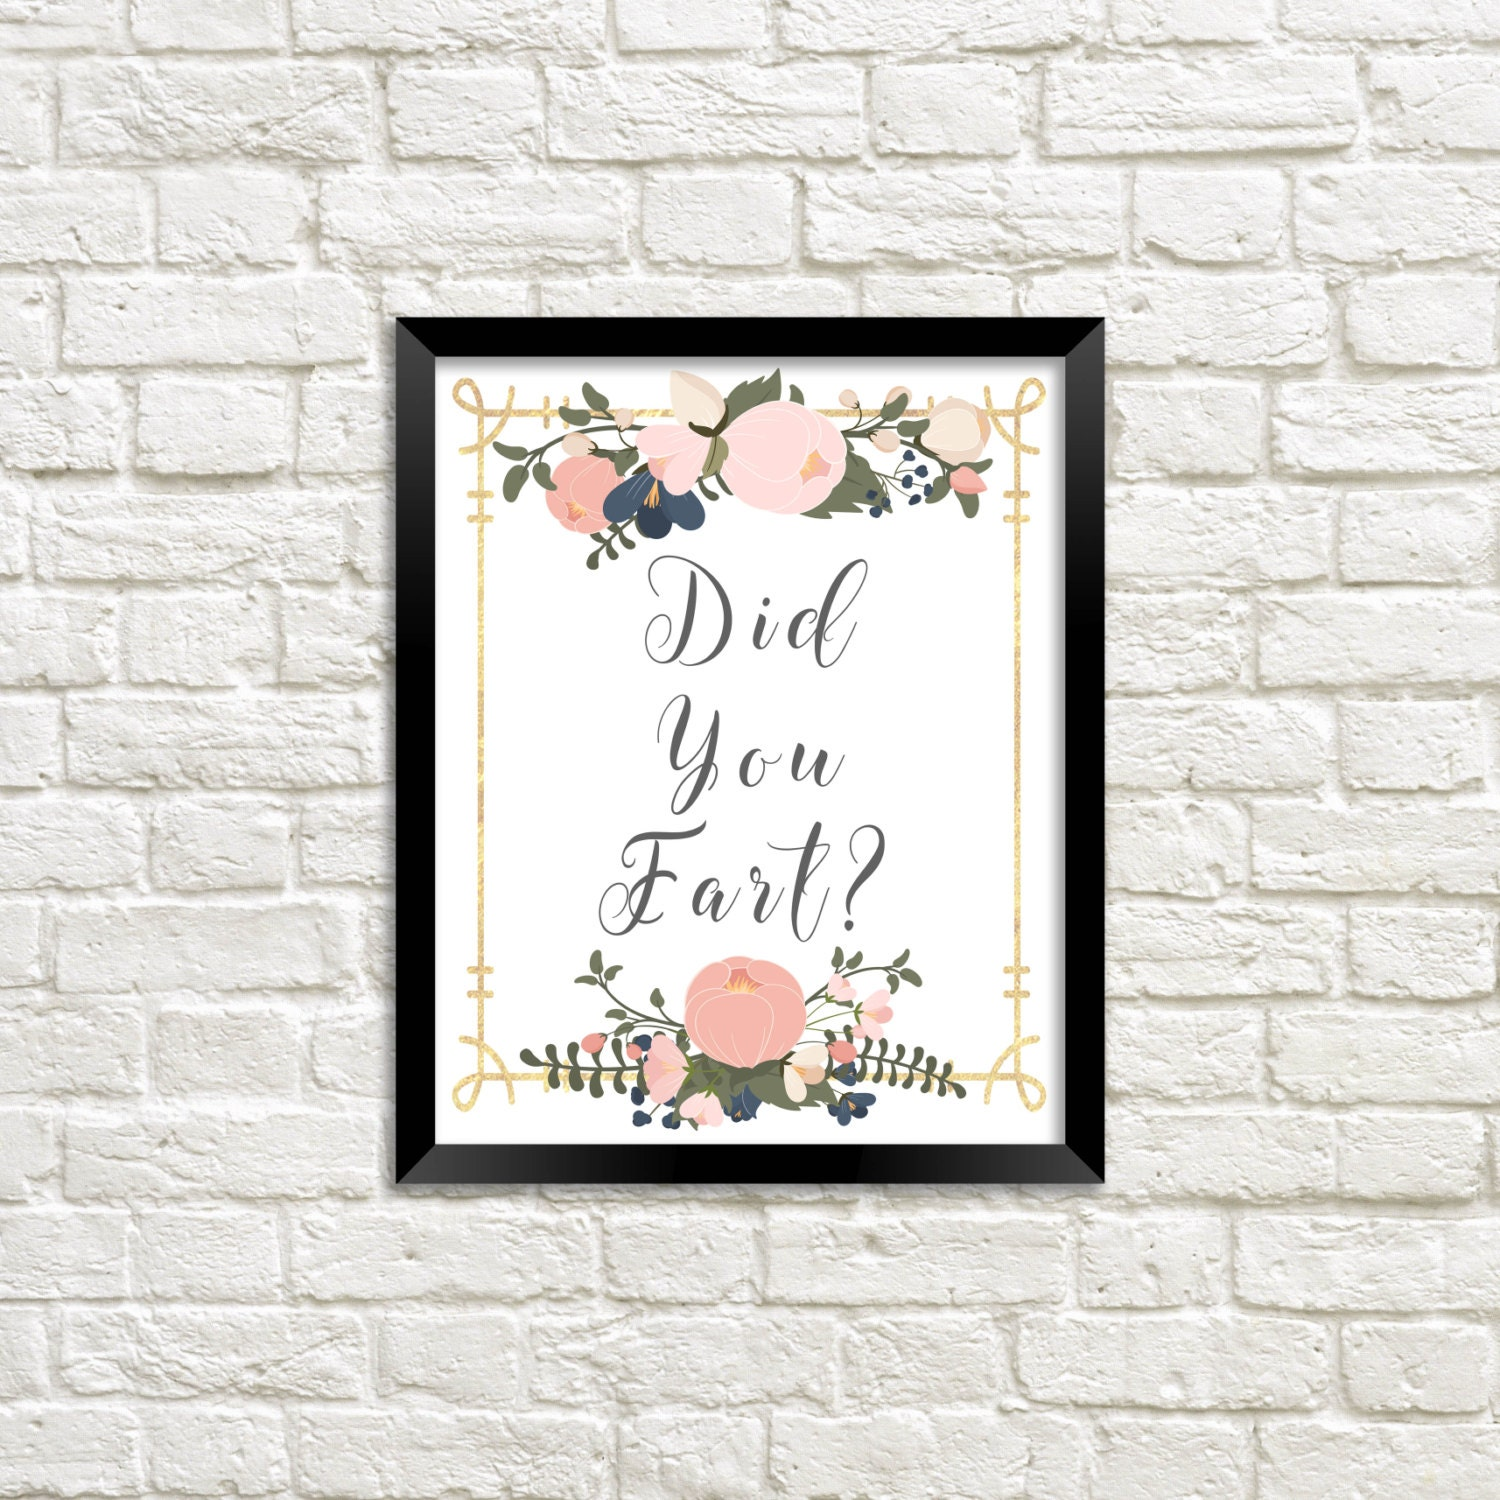 Funny bathroom signs for cleanliness - Funny Bathroom Art Bathroom Wall Art Bathroom Art Funny Art Did You Fart Fart Funny Art Beautiful Graphic Art Floral Art Funny Sign